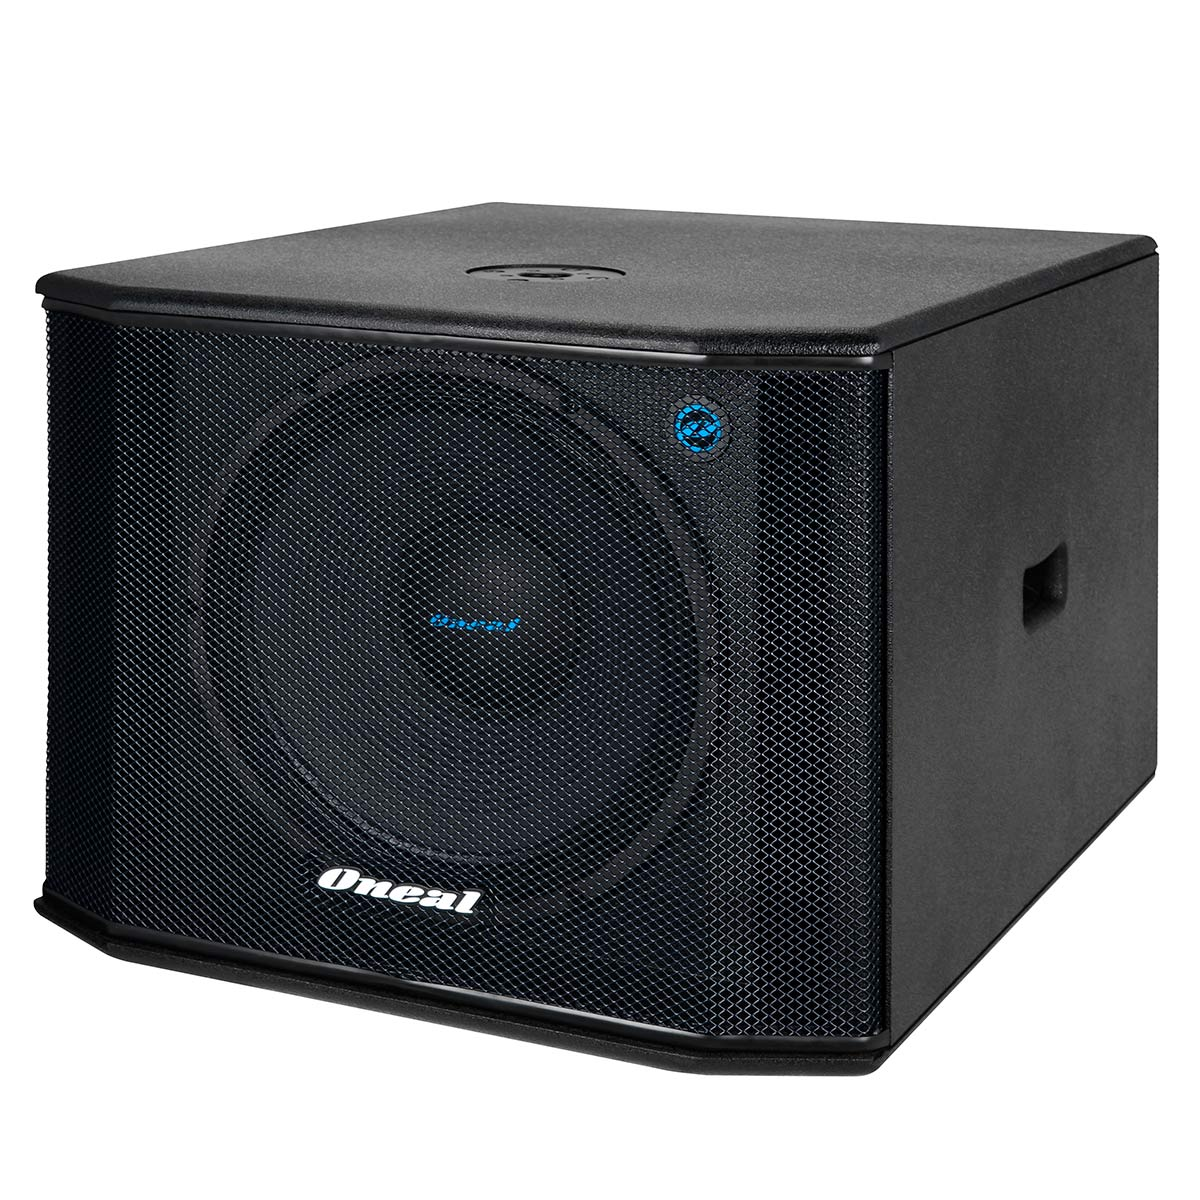 OPSB2215 - Subwoofer Ativo 600W OPSB 2215 - Oneal